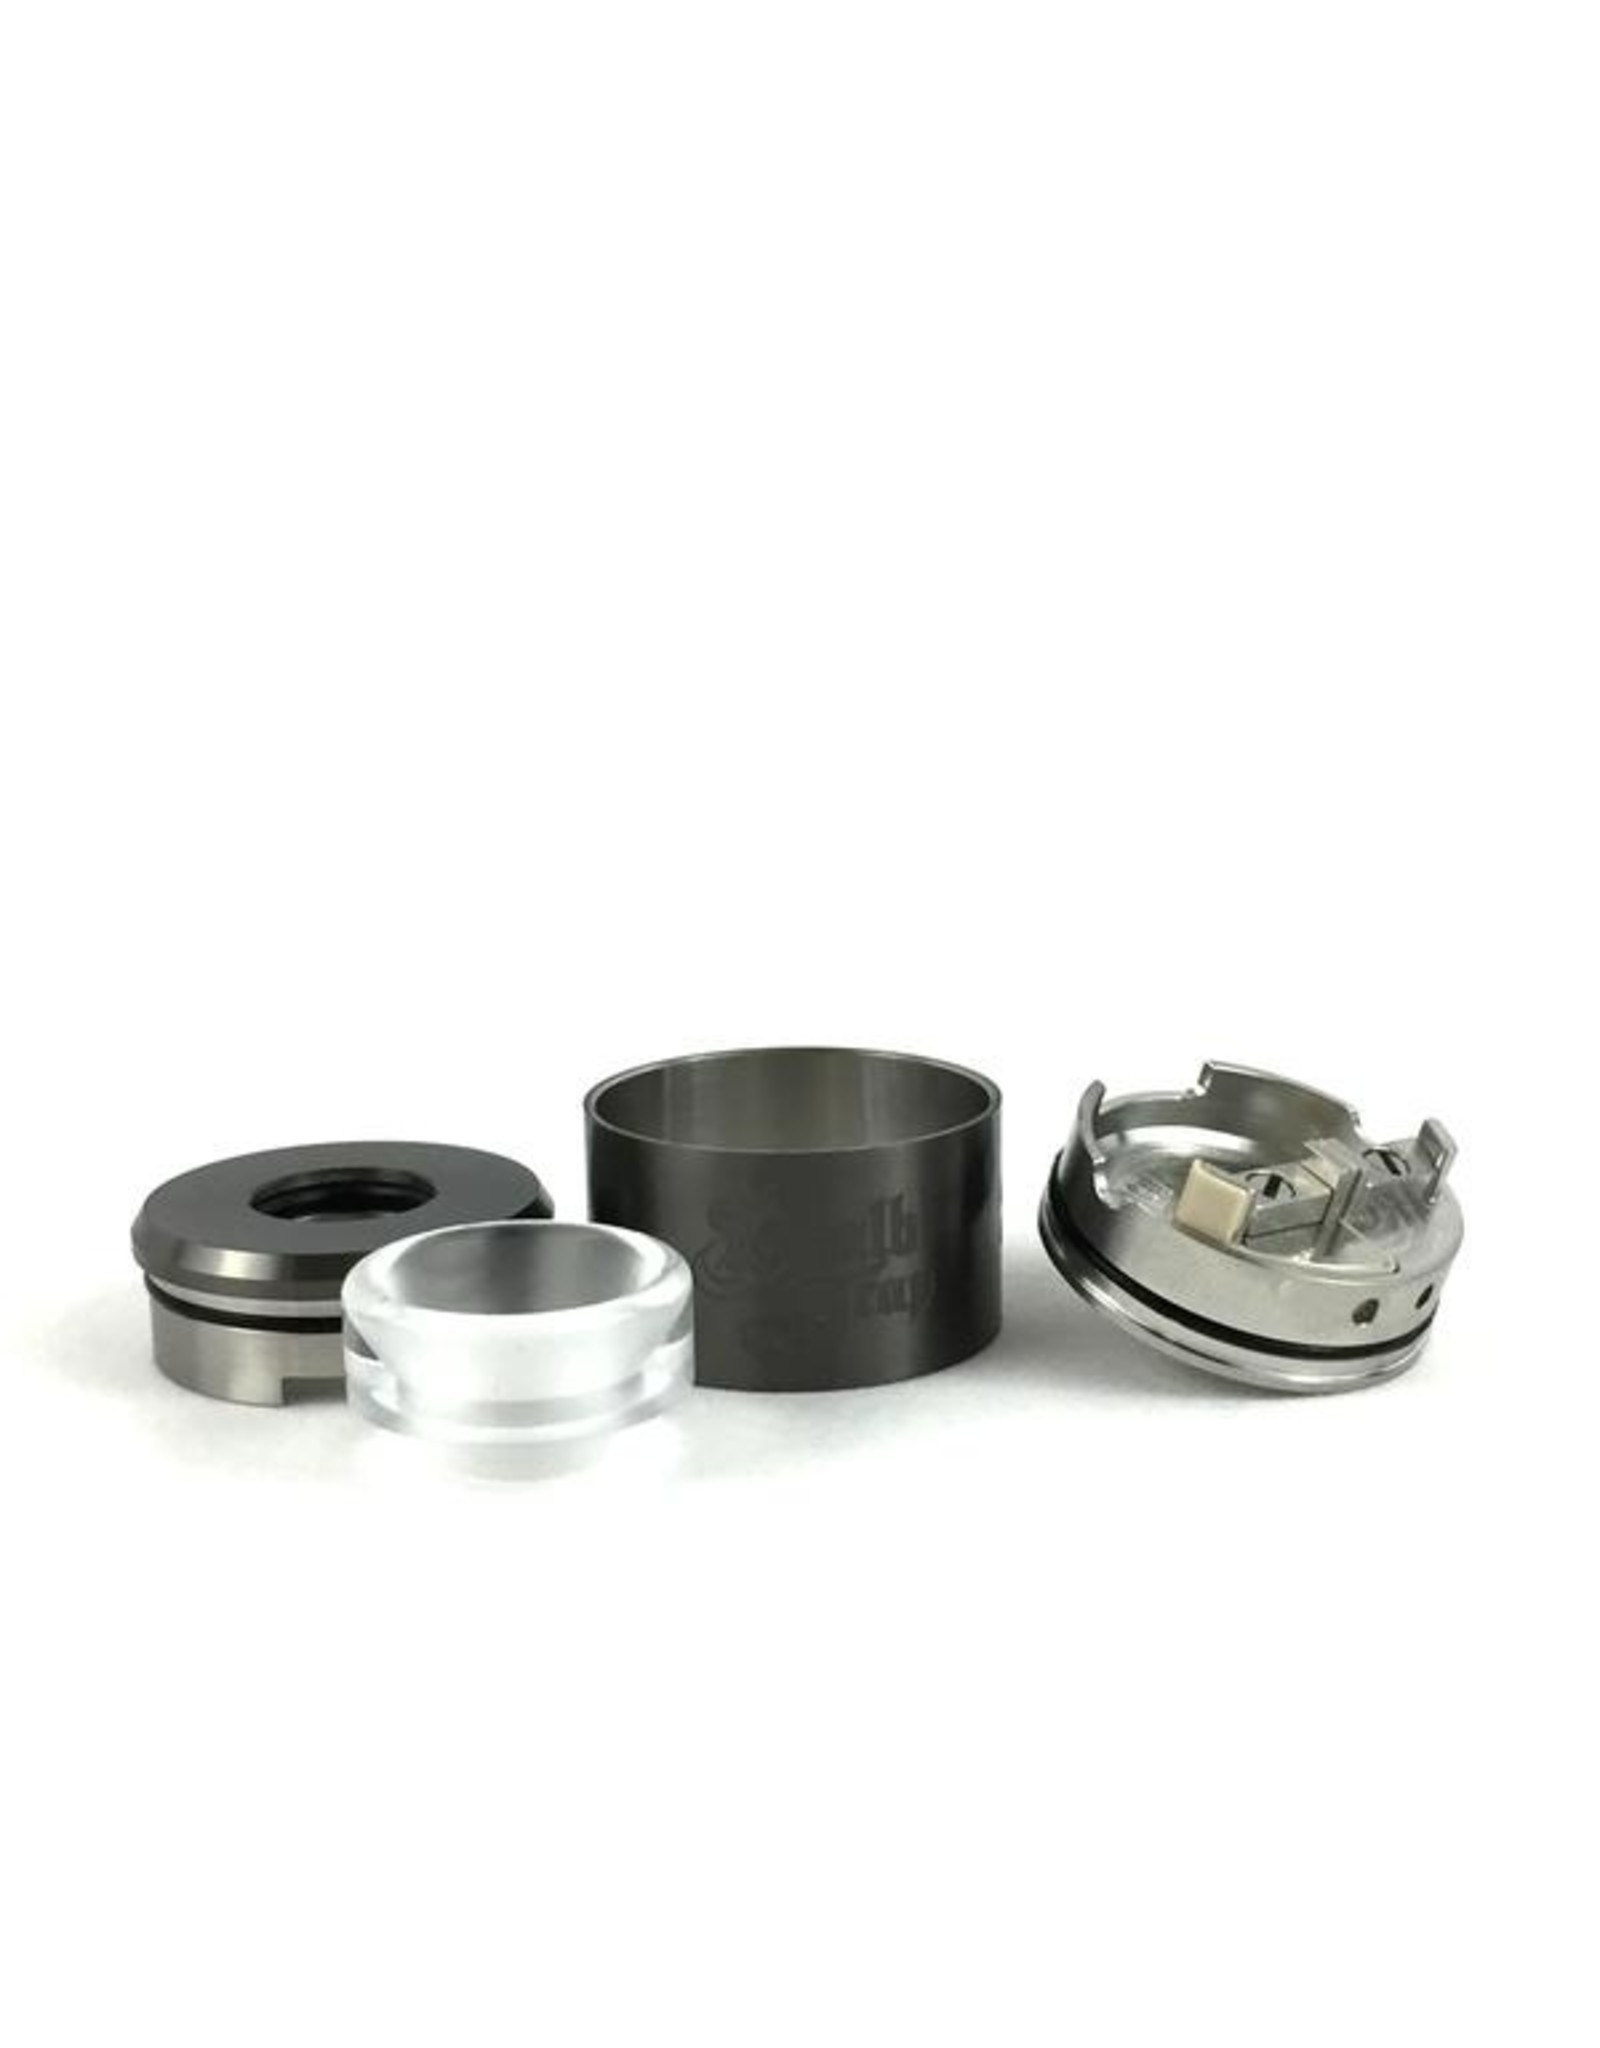 Death Wish Deathwish Death Trap 2 RDA 30mm